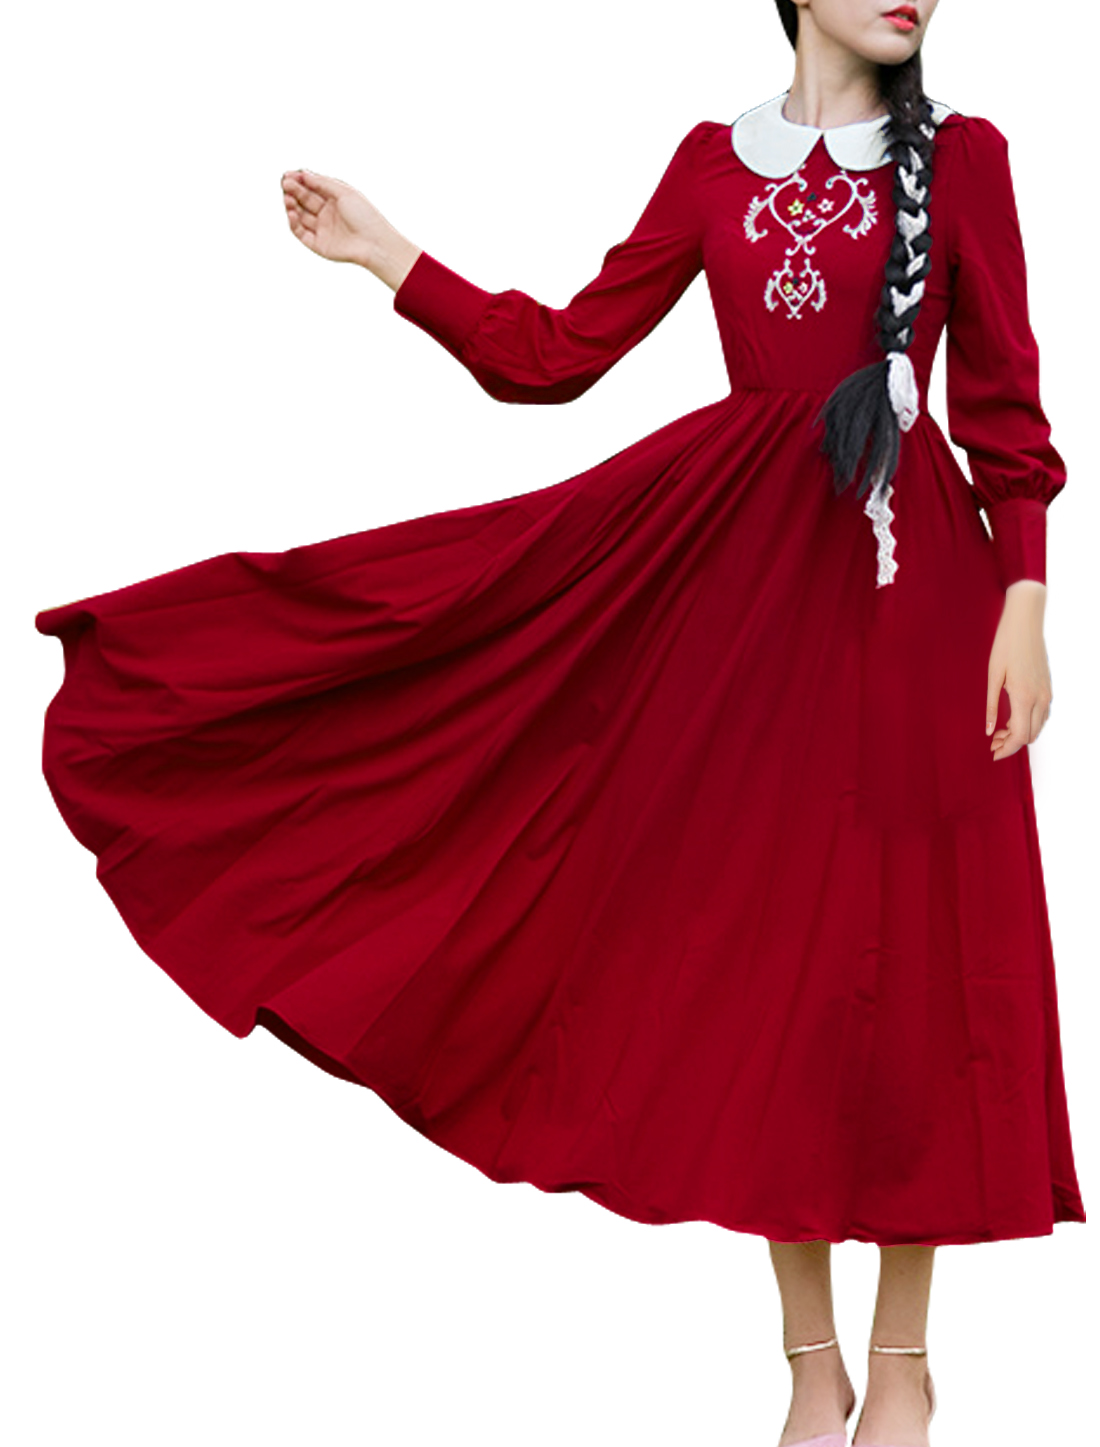 Women Peter Pan Collar Novelty Floral Embroidered A Line Long Dress Red M